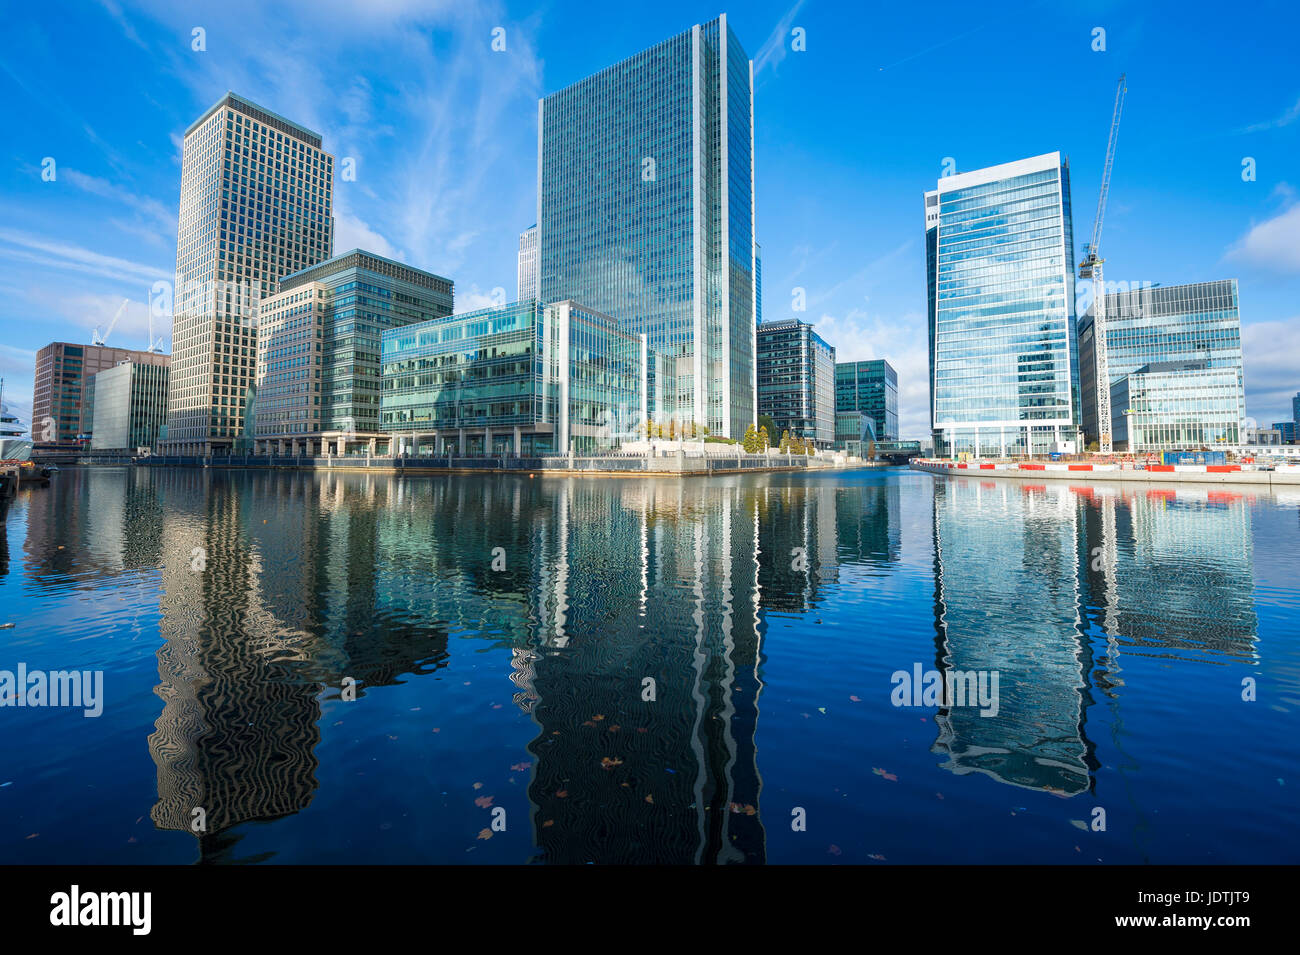 Shiny Canary Wharf skyscrapers towering above and reflecting in the docks of the River Thames in London. - Stock Image